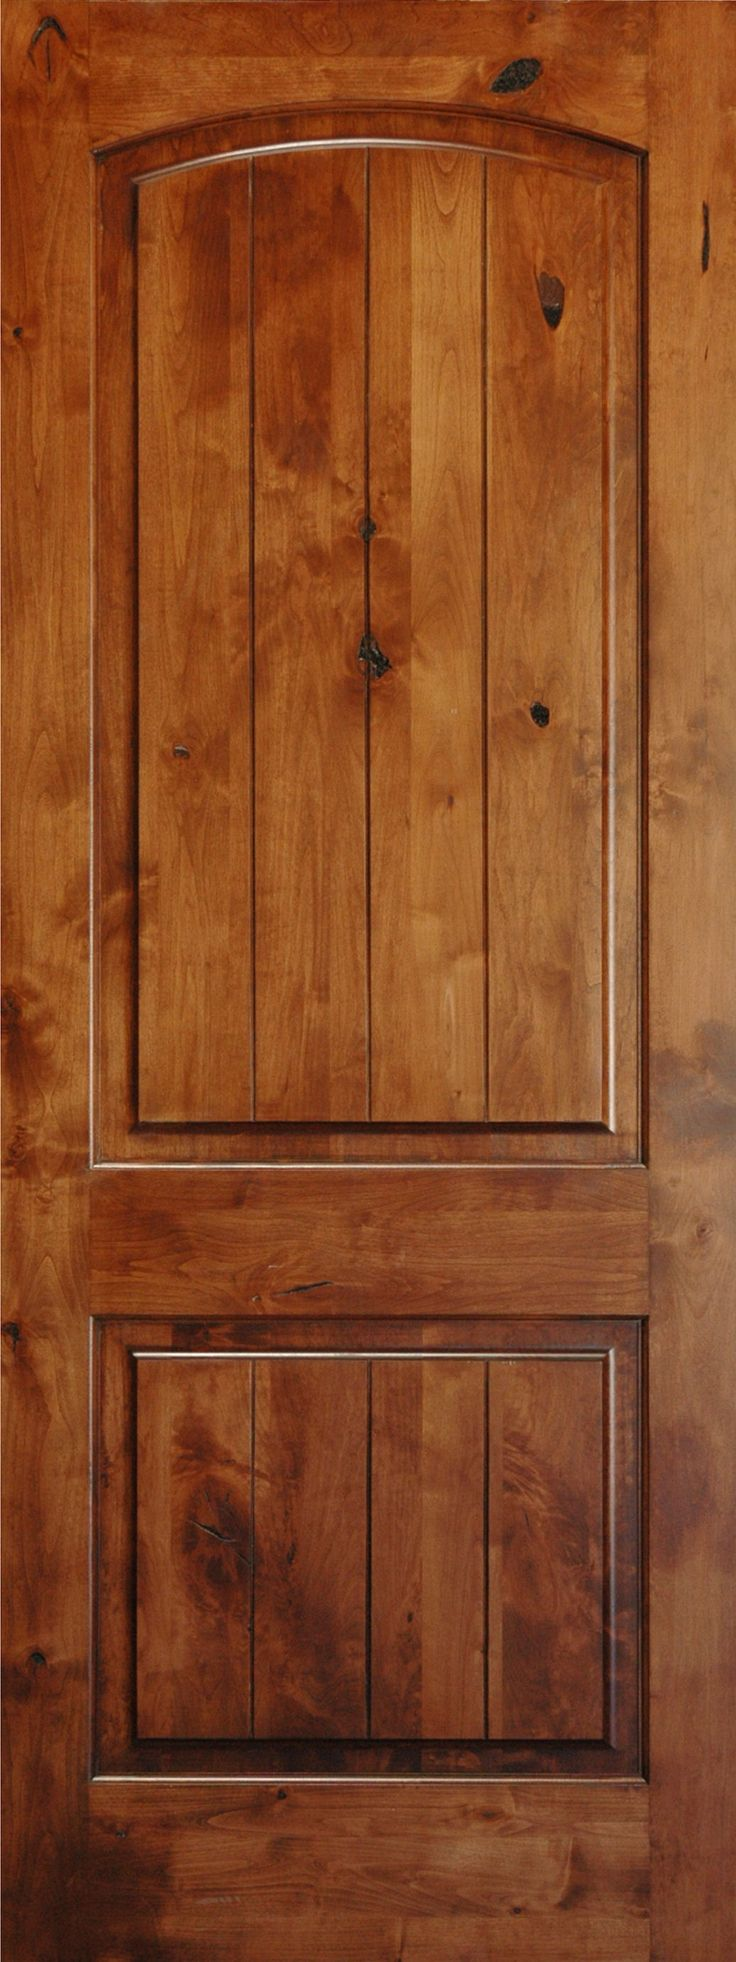 25 Best Knotty Pine Doors Ideas On Pinterest Pine Chairs Framed Art Inspiration And Welcome